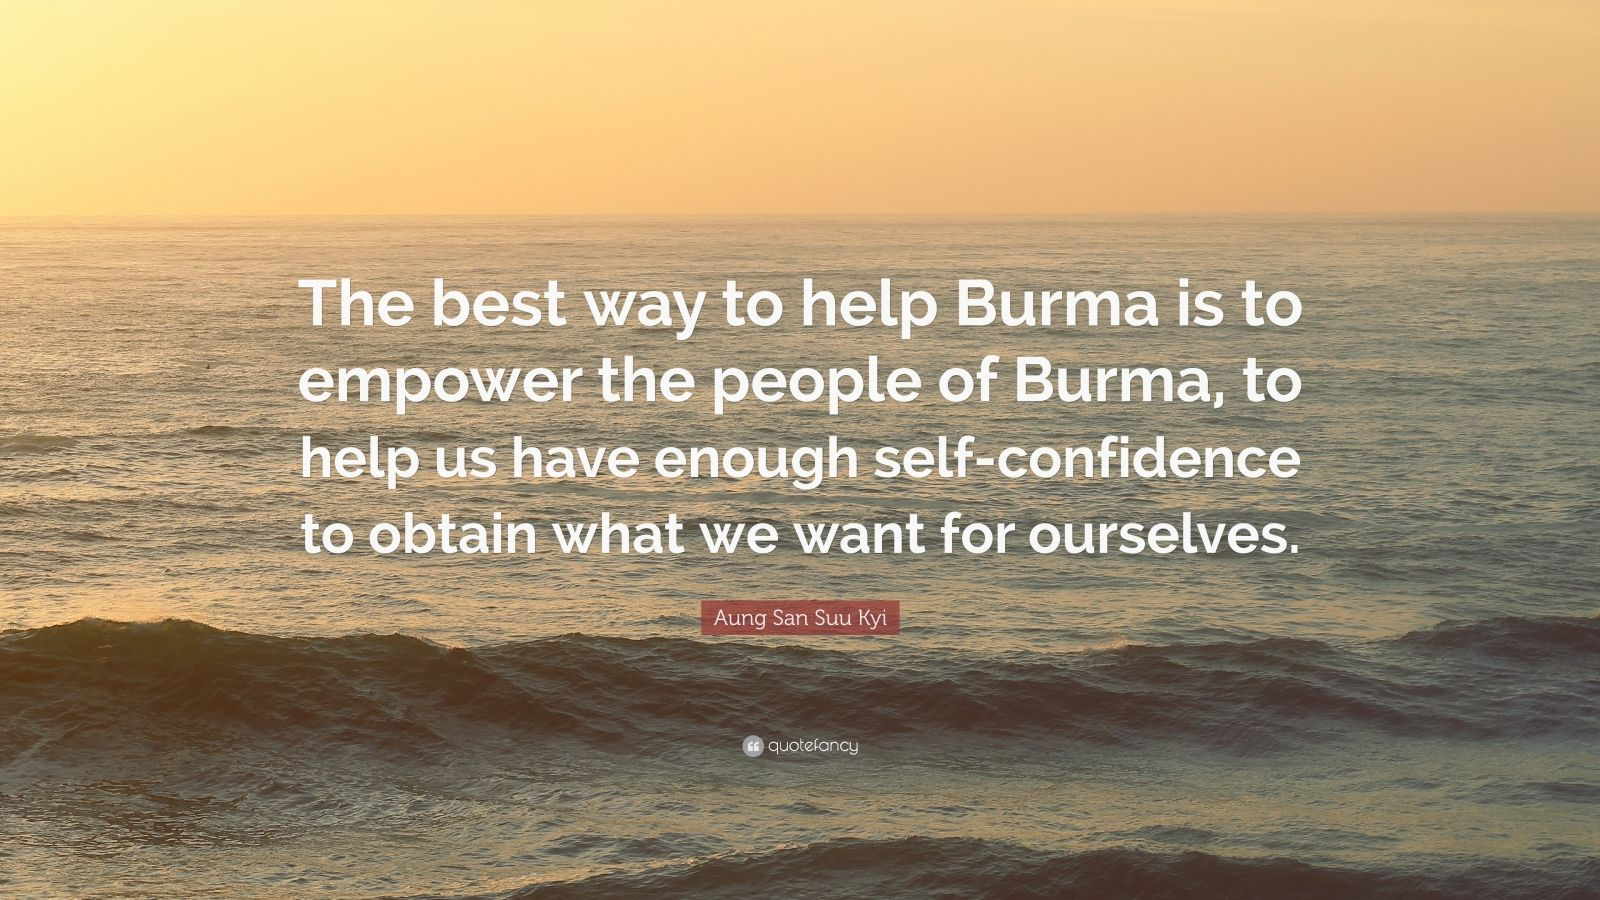 """Aung San Suu Kyi Quote: """"The best way to help Burma is to empower the people of Burma, to help us have enough self-confidence to obtain what we want for ourselves."""""""